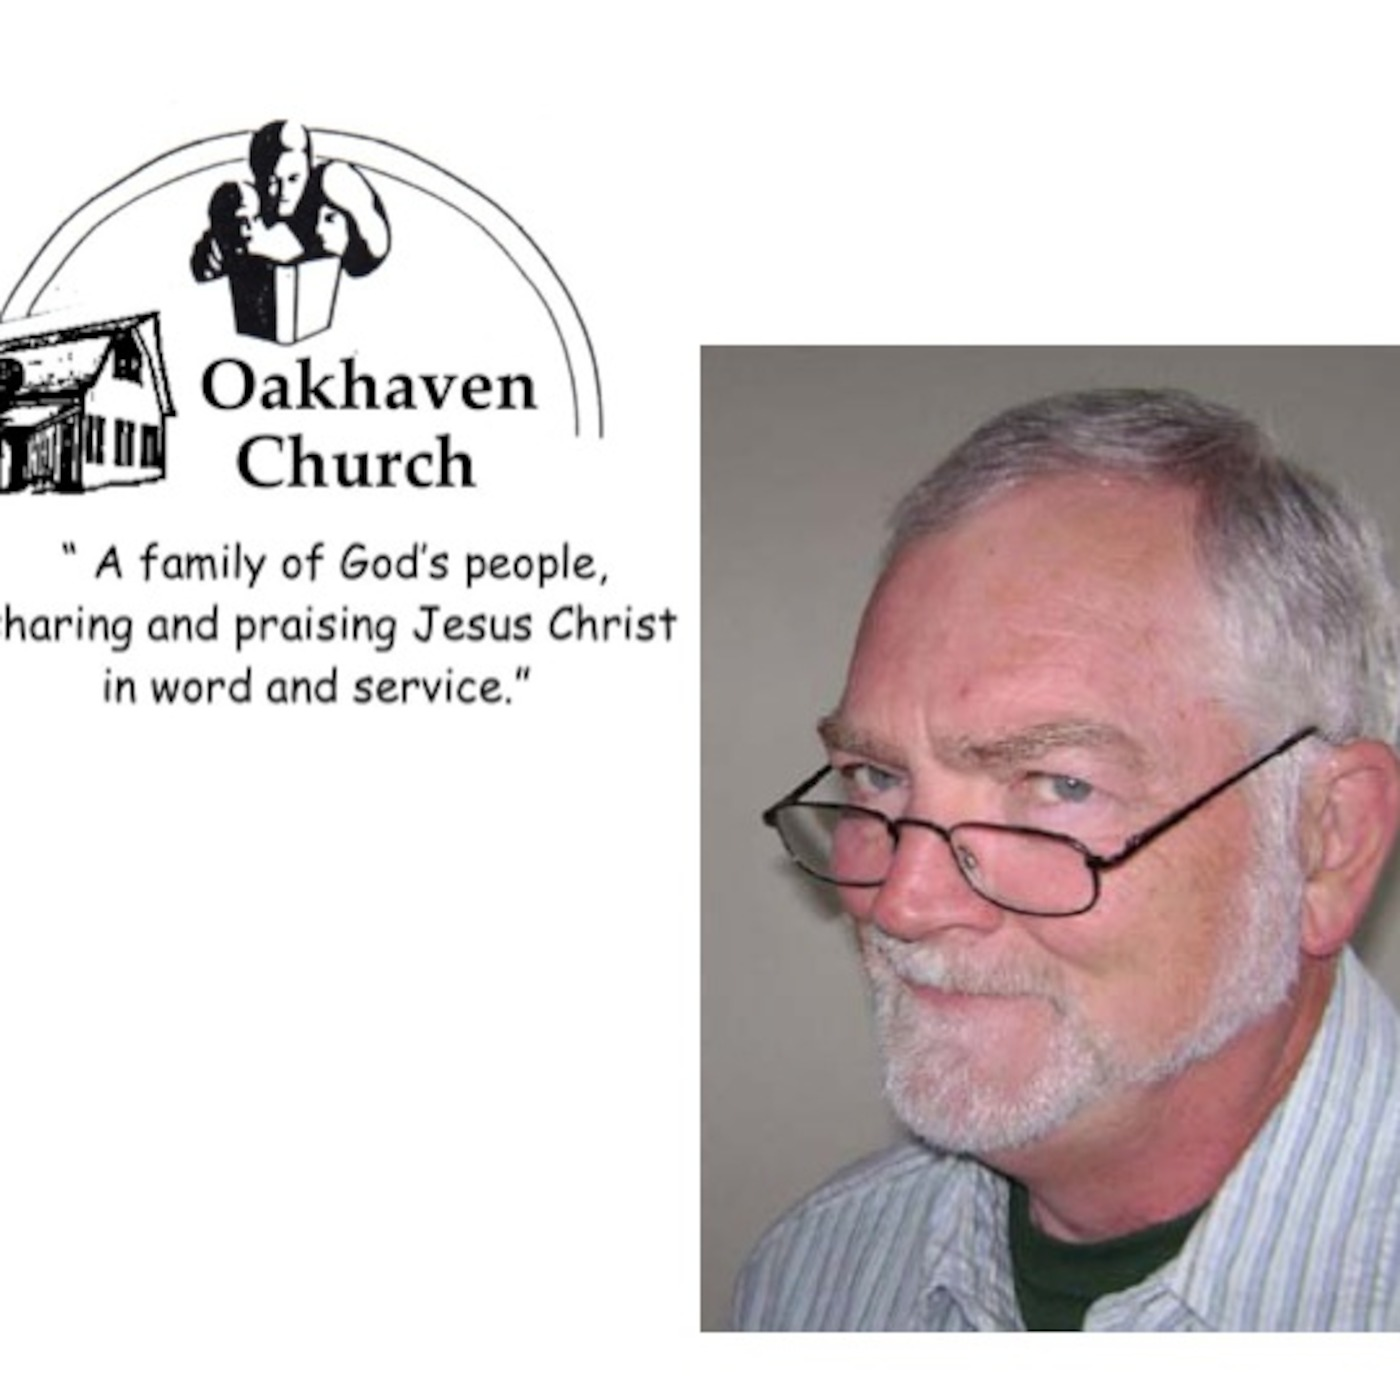 Oakhaven Church's Podcast